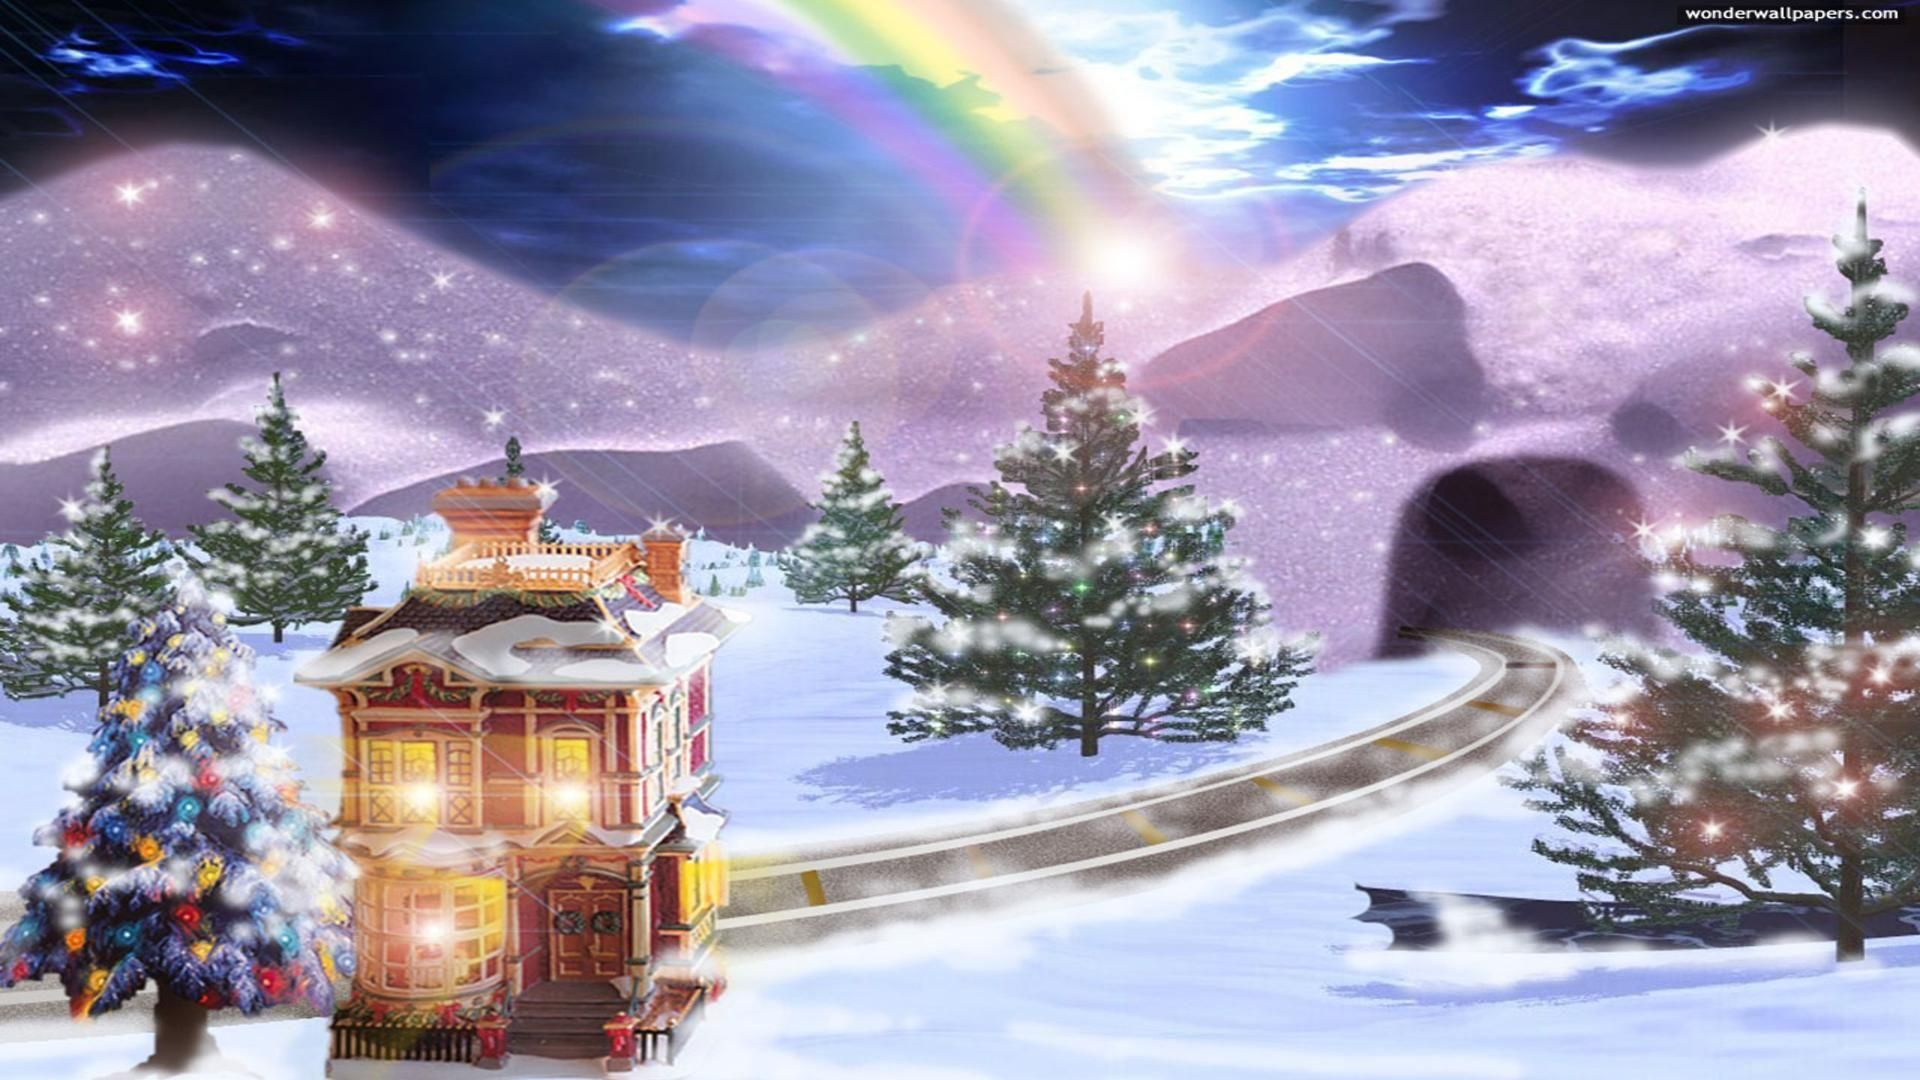 Christmas dreams wallpaper scenic with rainbow over sky free christmas dreams wallpaper scenic with rainbow over sky free greeting card kristyandbryce Choice Image